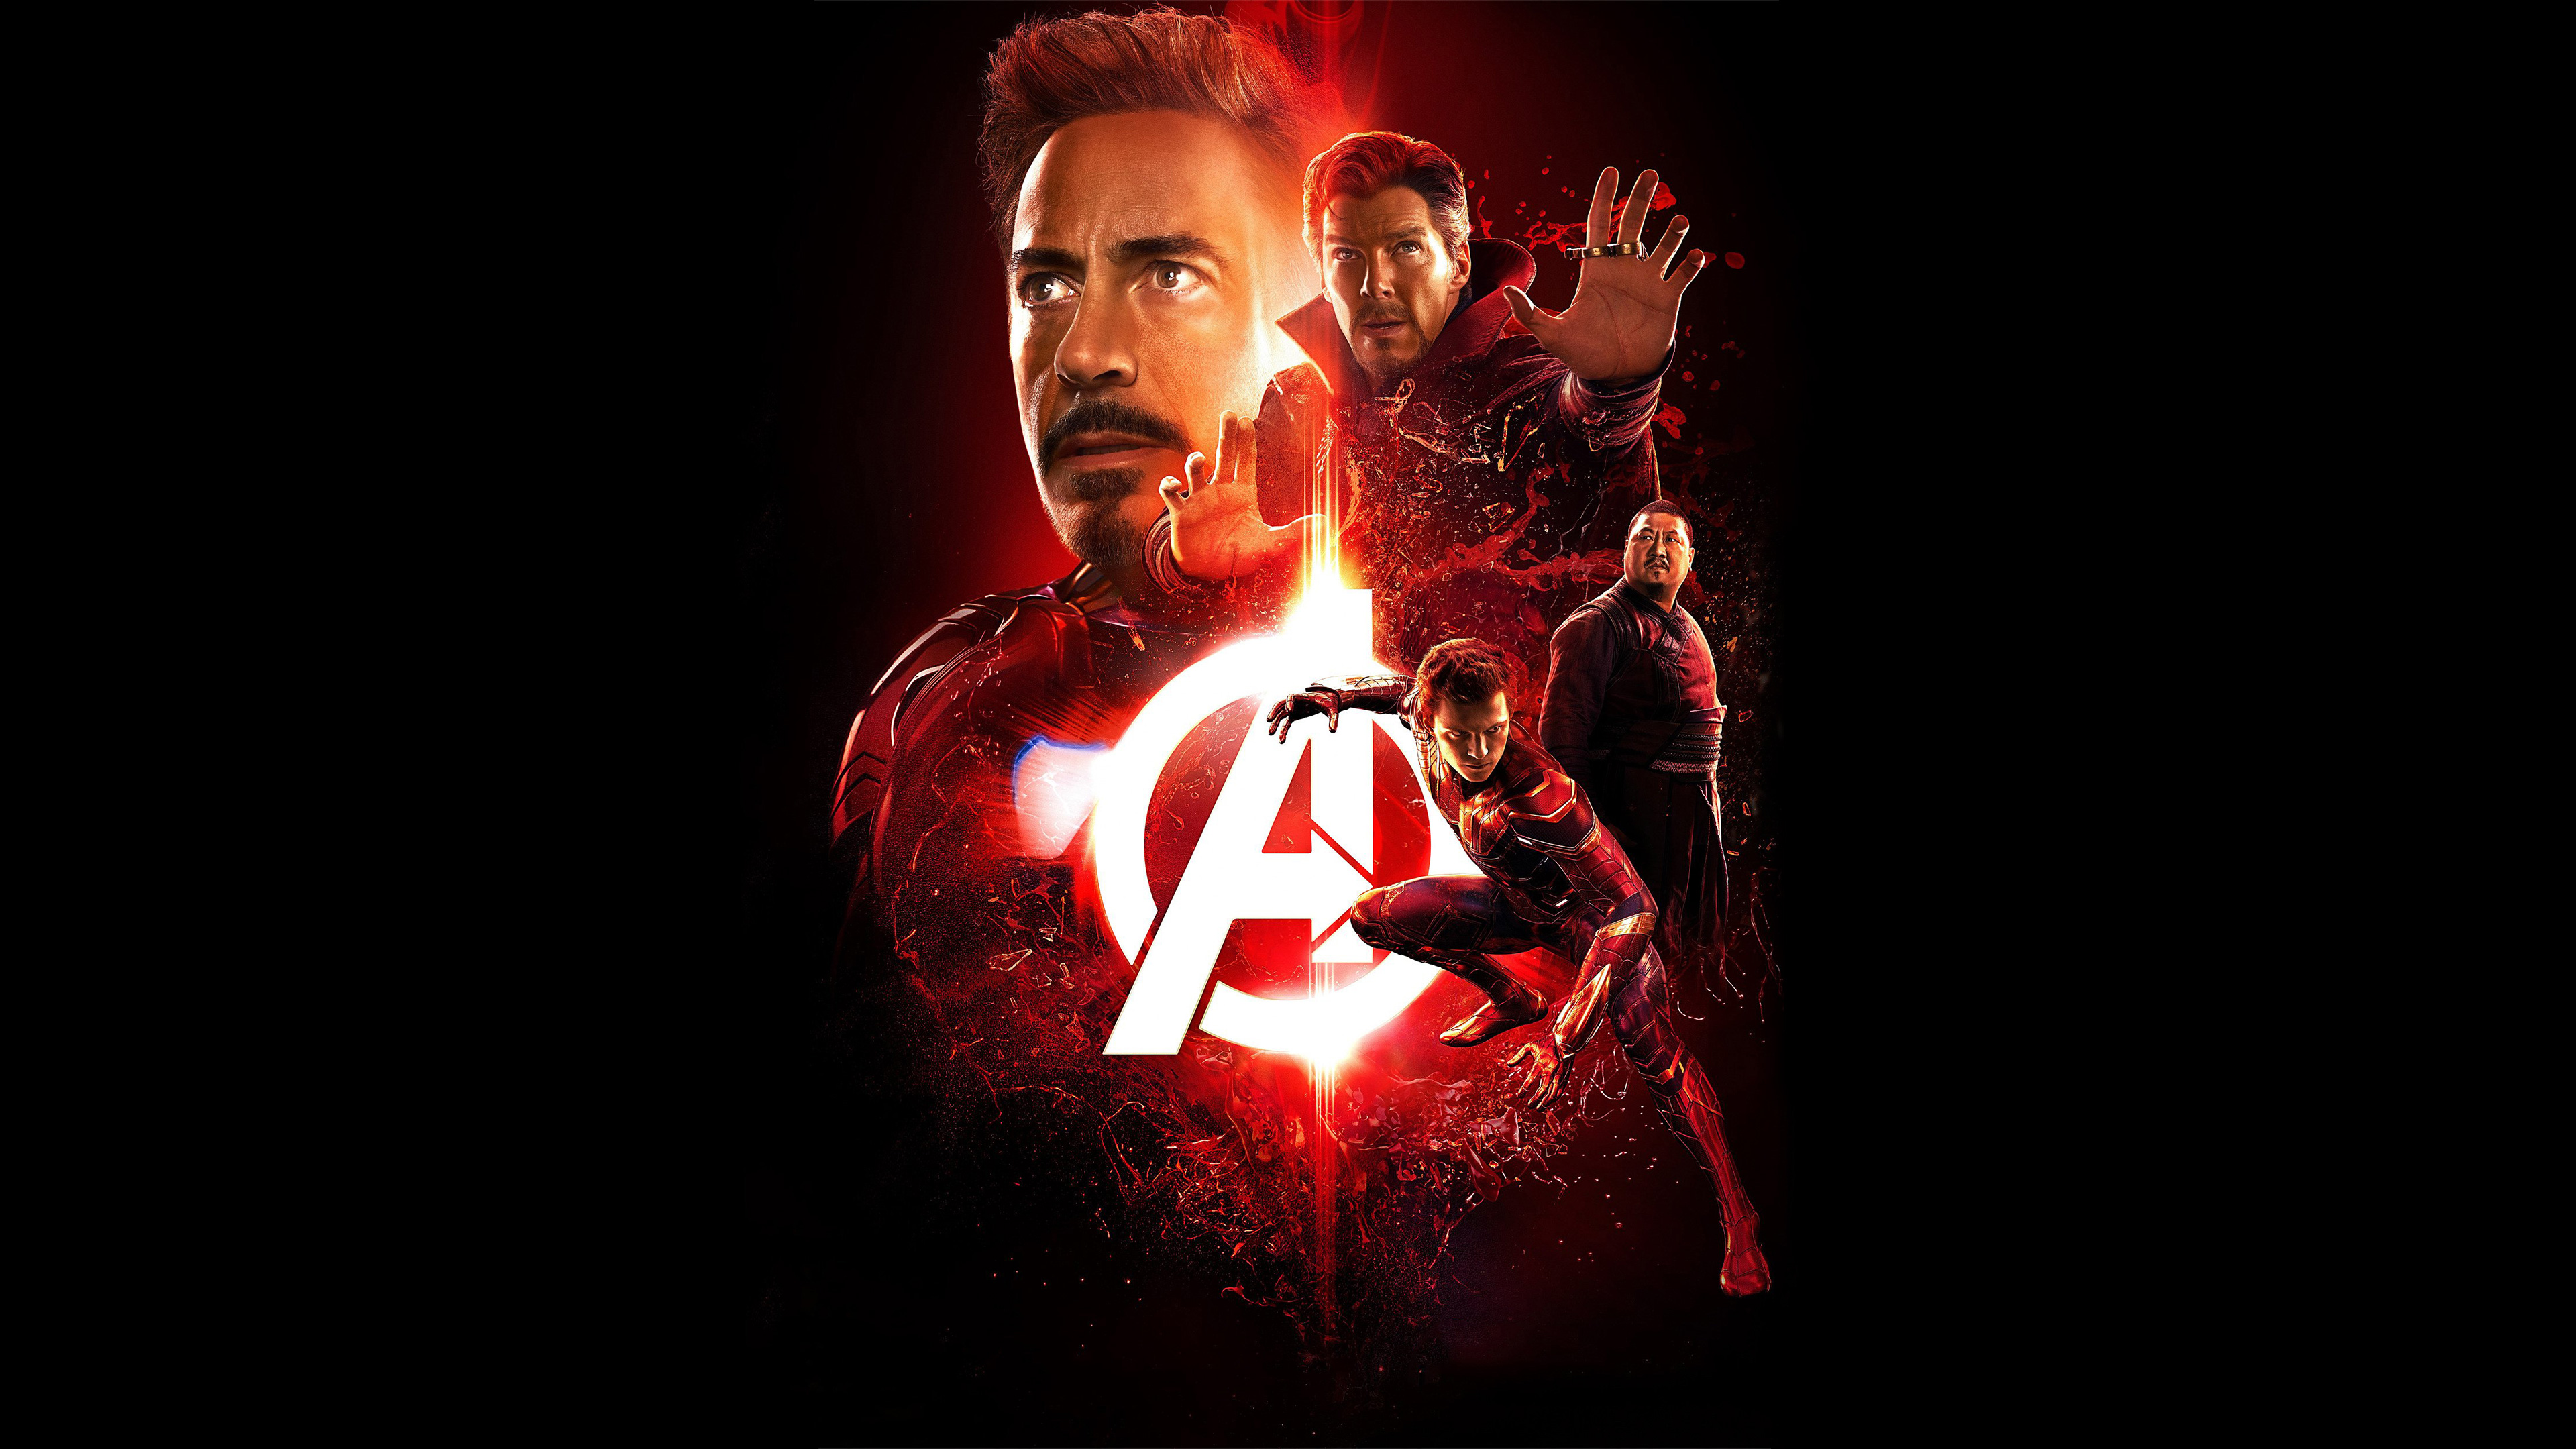 Avengers Infinity War 2018 Reality Stone Poster UHD 4k